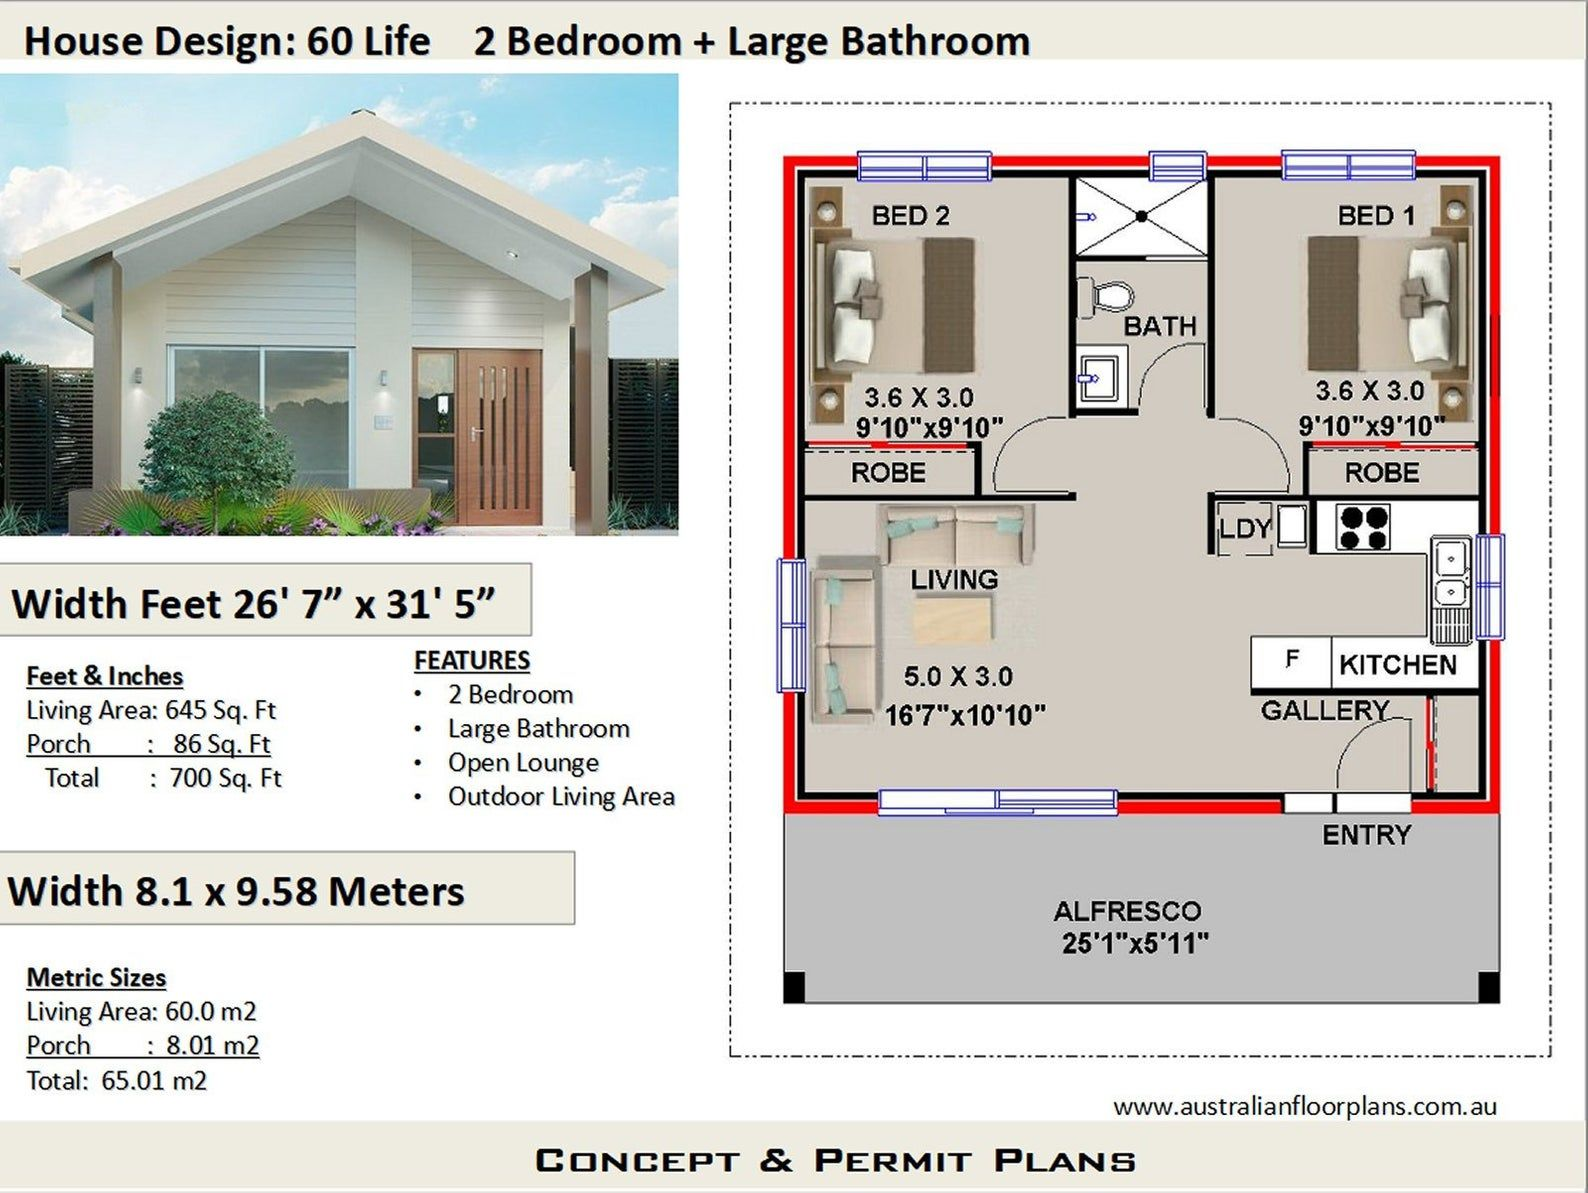 2 Bedroom House Plan 700 Sq Feet Or 65 M2 2 Small Home Etsy House Plans Australia Flat House Design House Plans For Sale